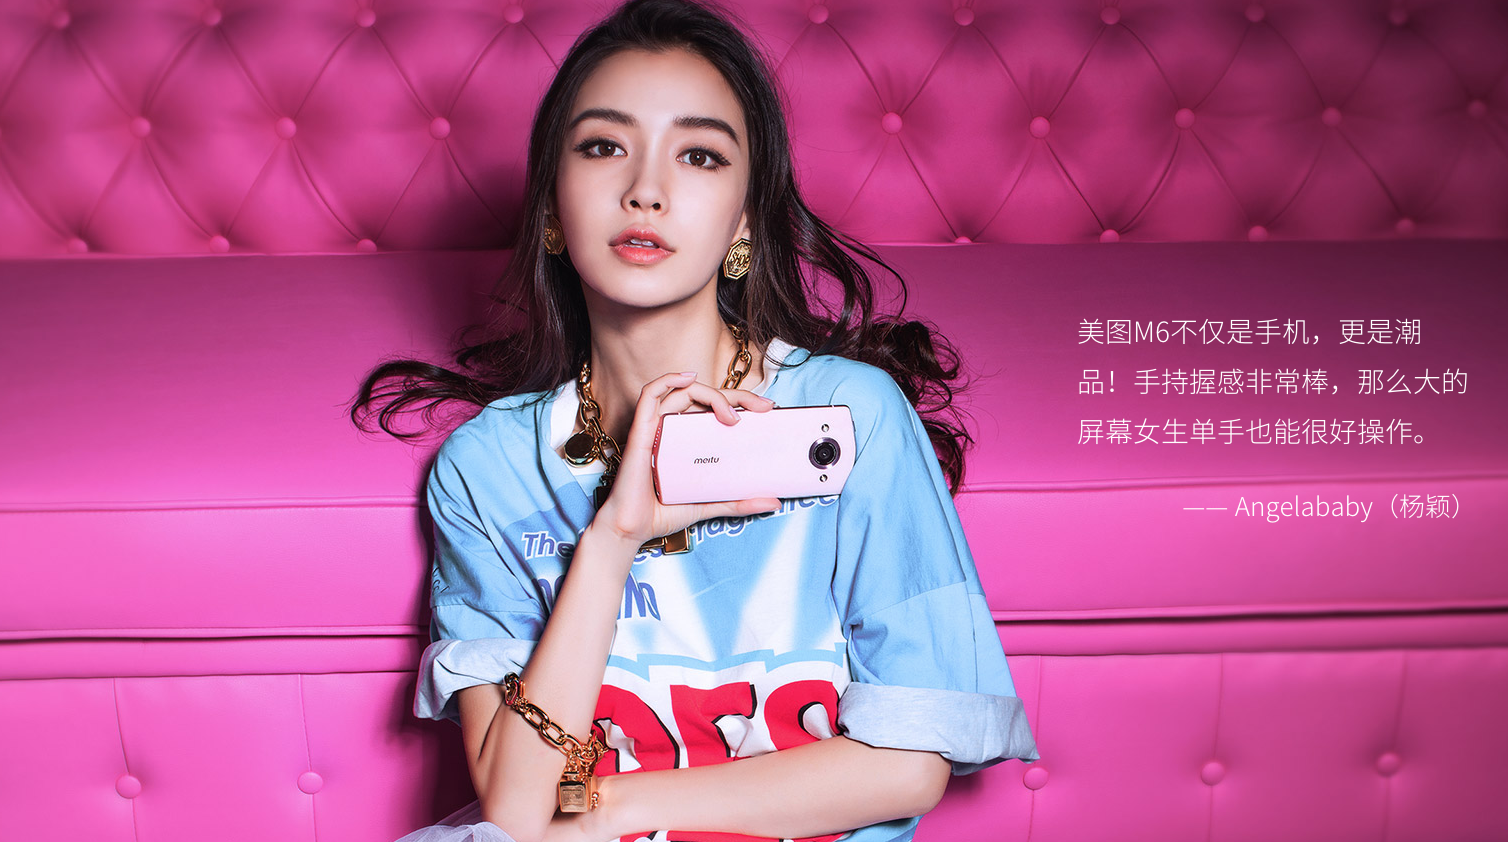 Meitu Smartphone M6 and its endorser AngelaBaby